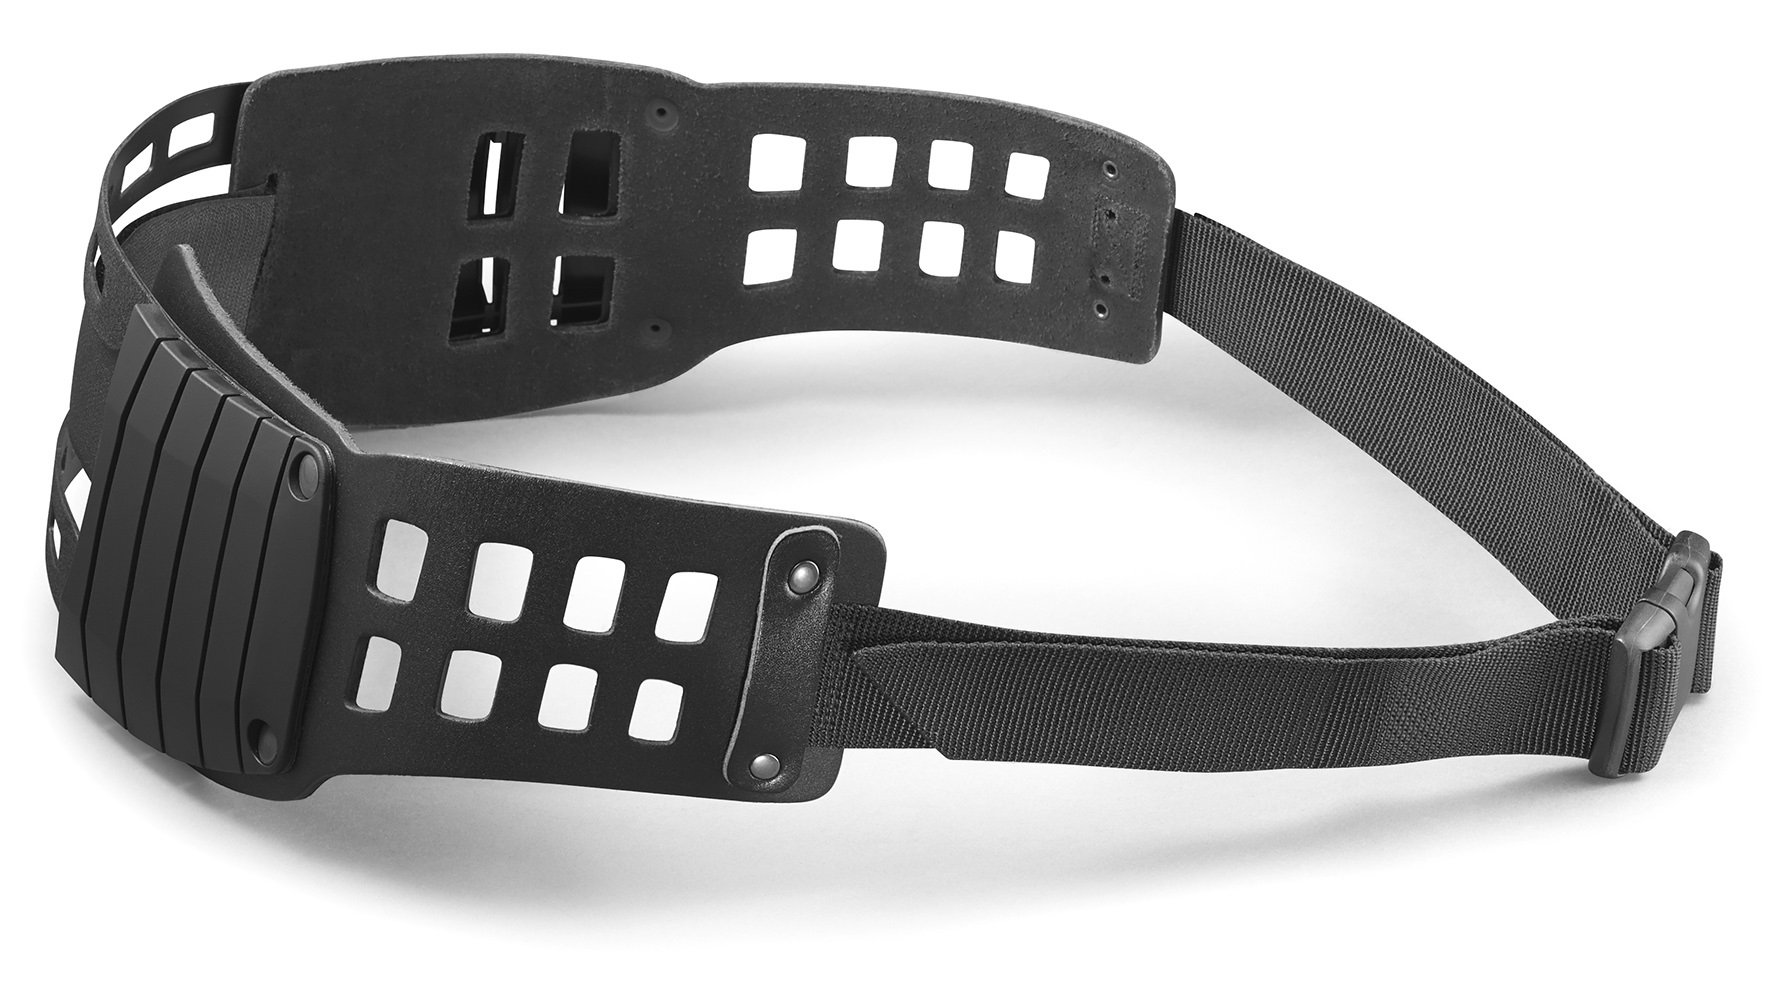 3M 35-0099-14 Powered Air Purifying Respirator Belt with Quick Connection